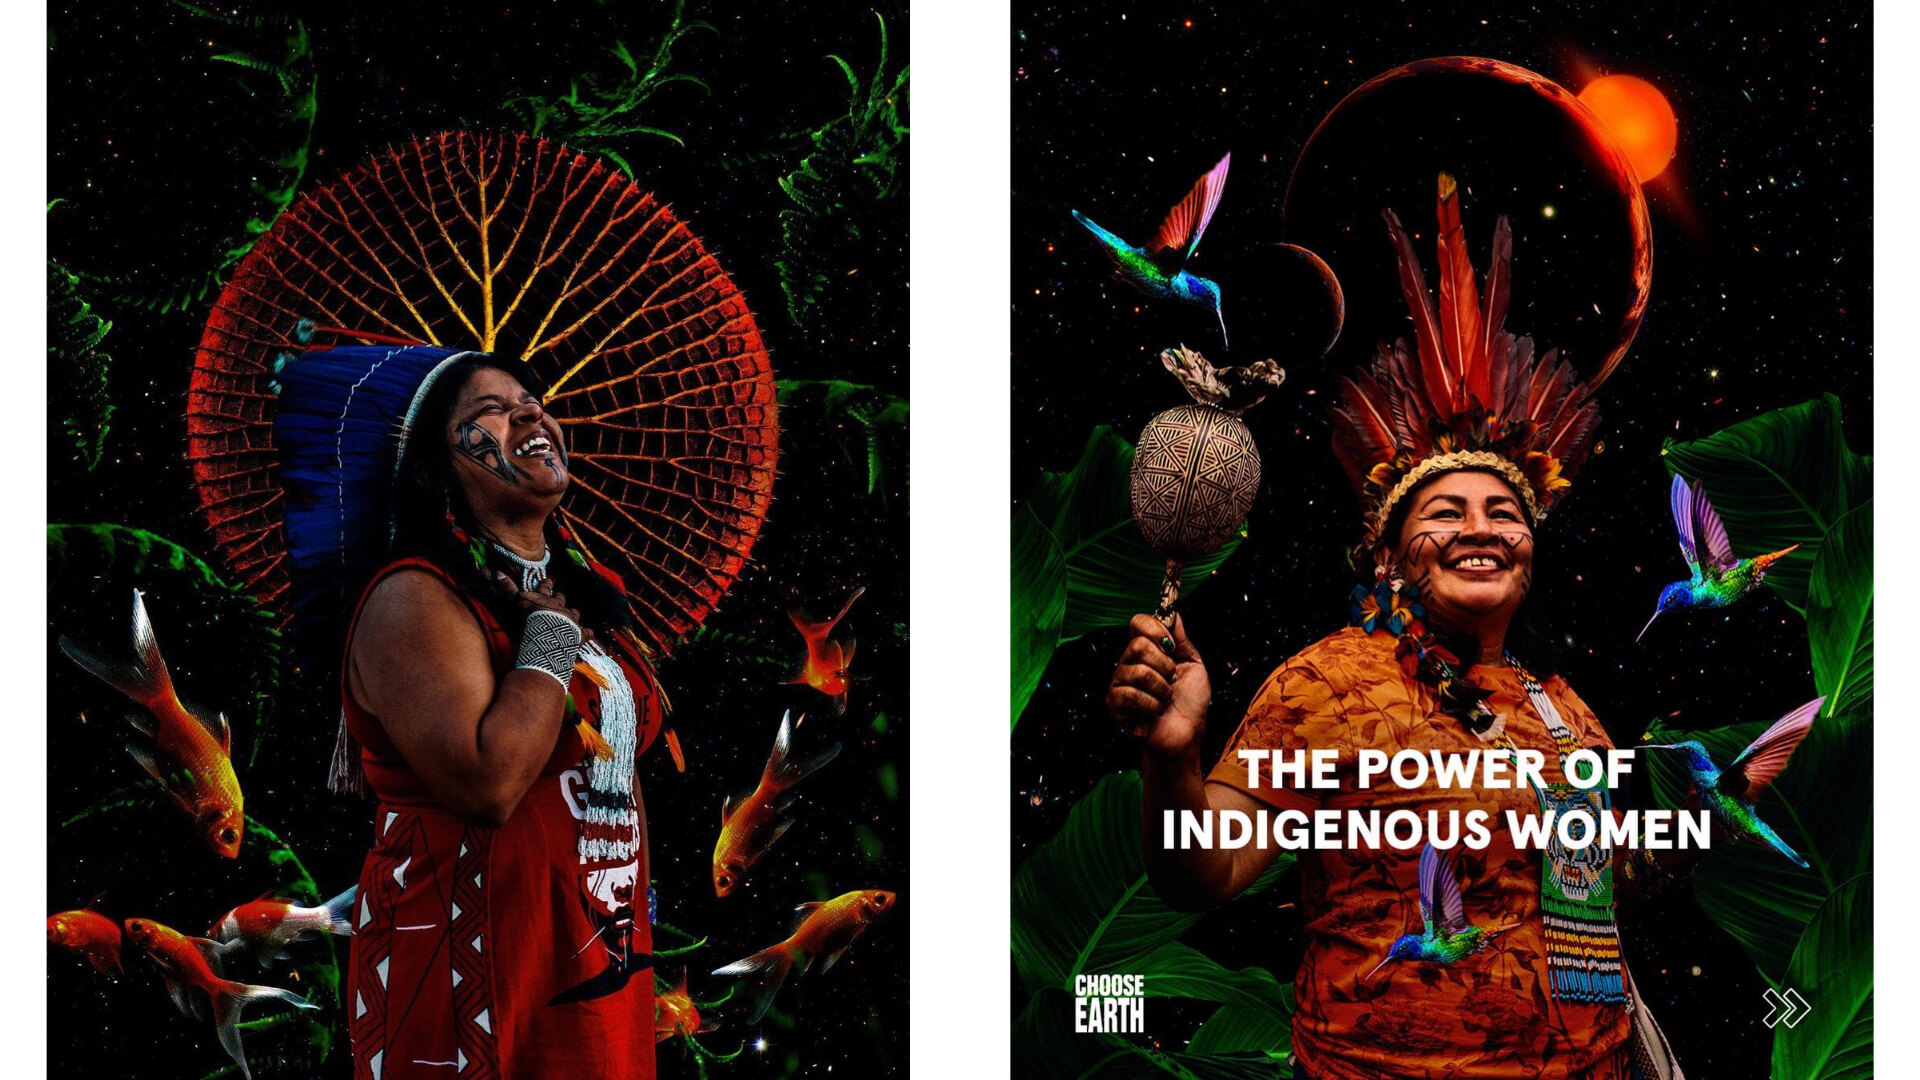 CHOOSE EARTH posters with female indigenous leaders